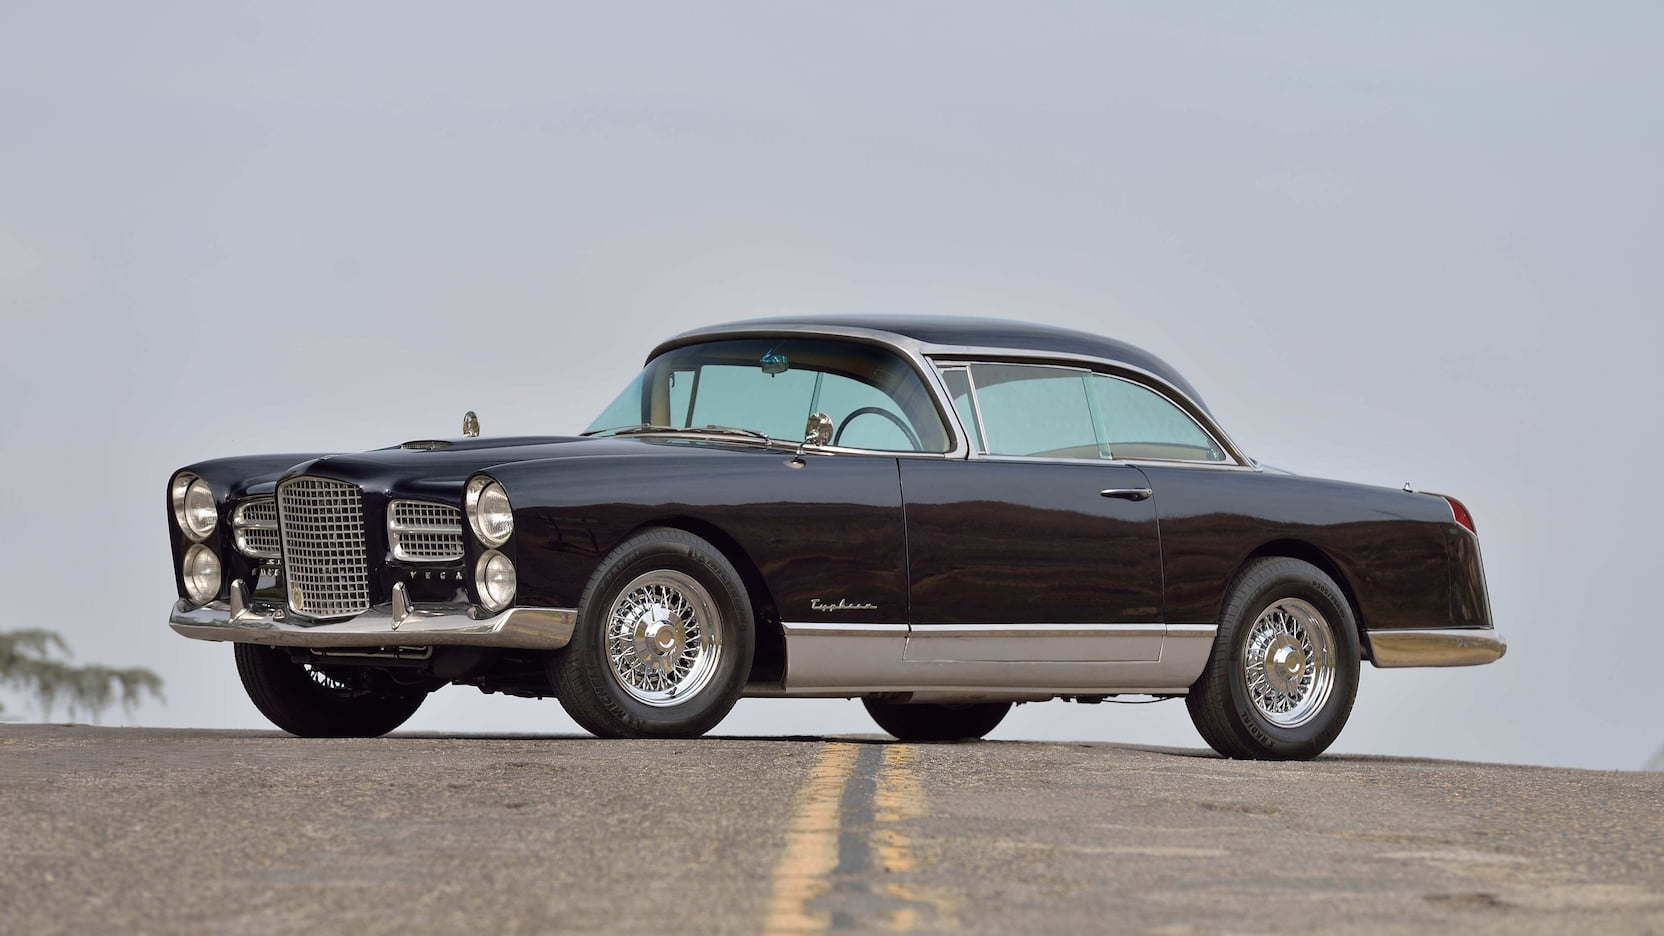 2018 Mustang Mach 1 >> 1 of 36 Ever Made: The Rare 1958 Facel Vega FV4 Typhoon